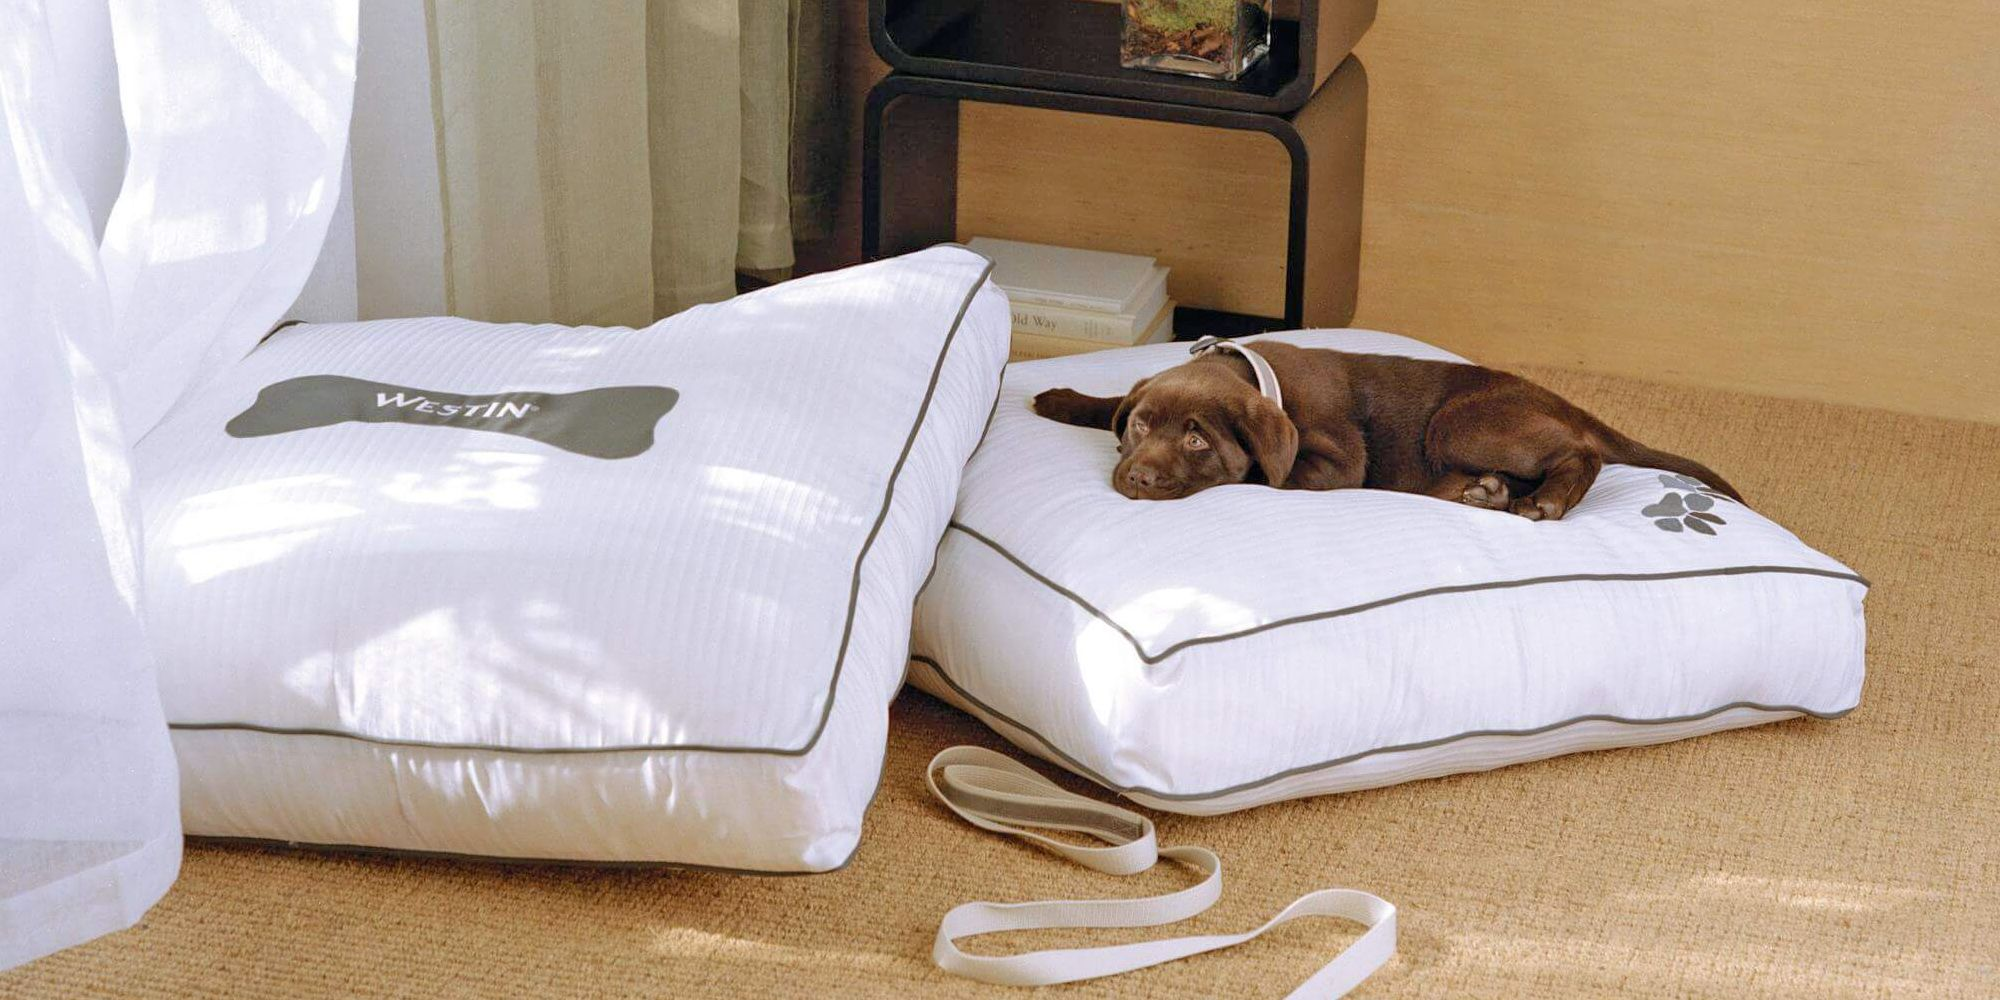 WestinValencia Heavenly dog bed